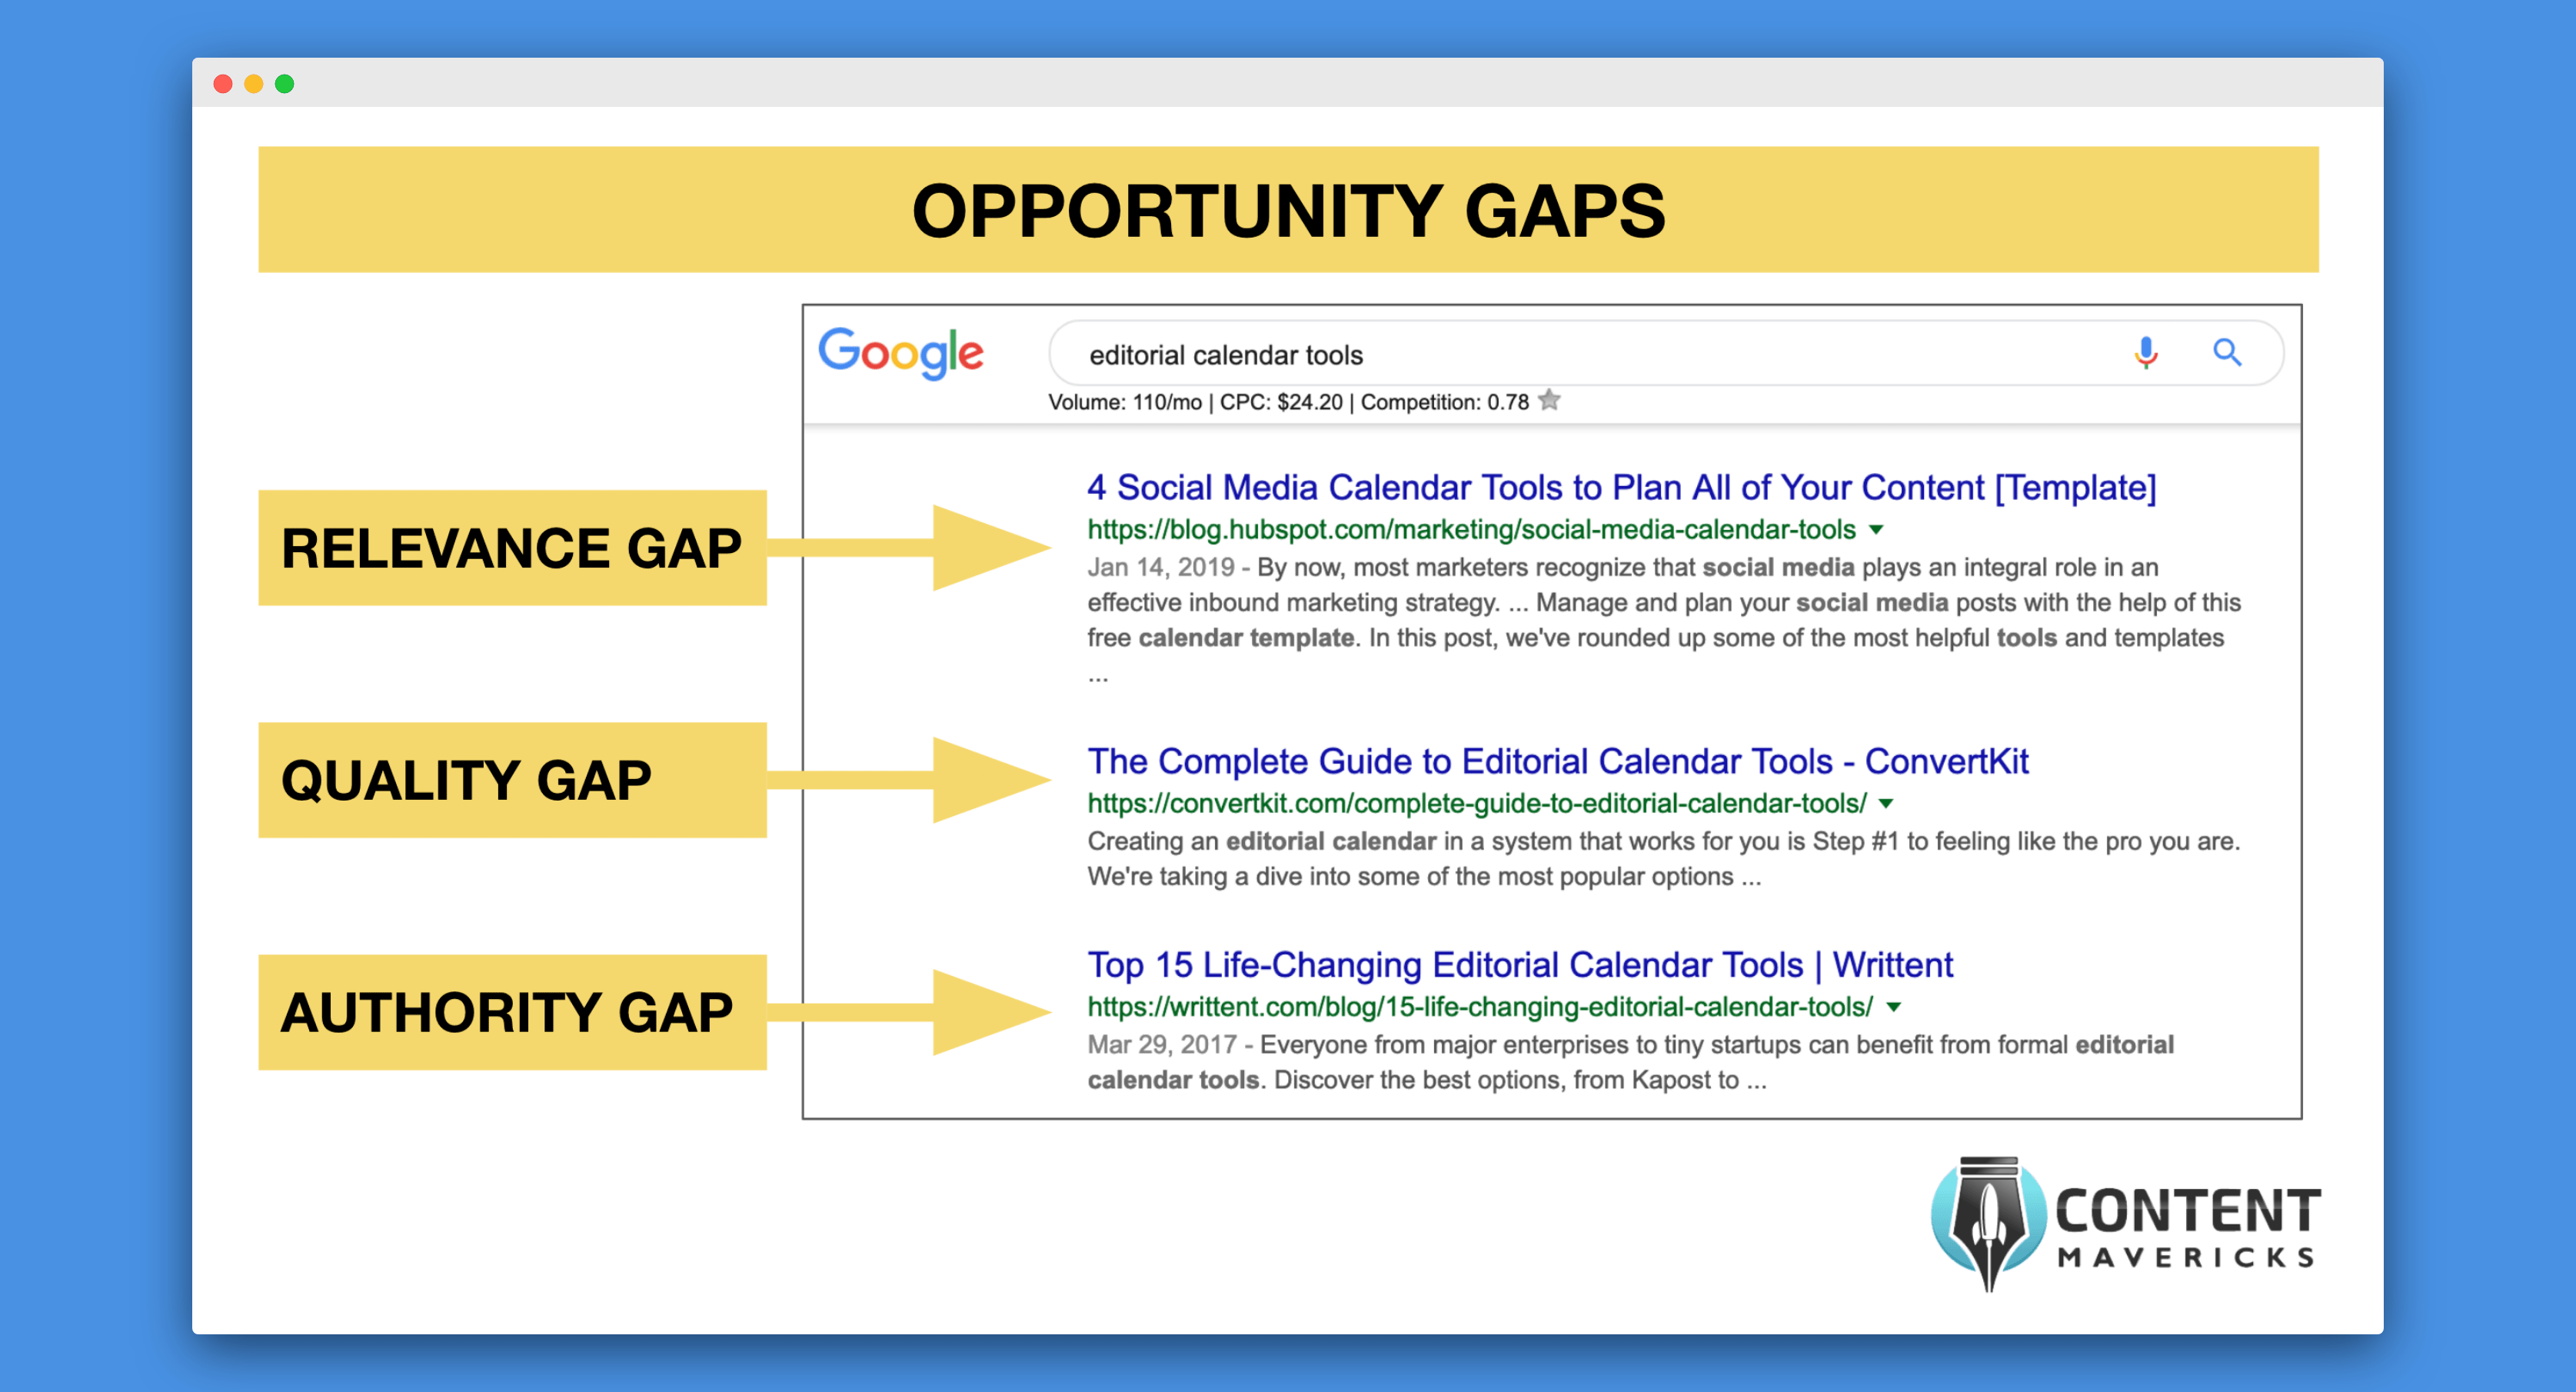 opportunity gaps image